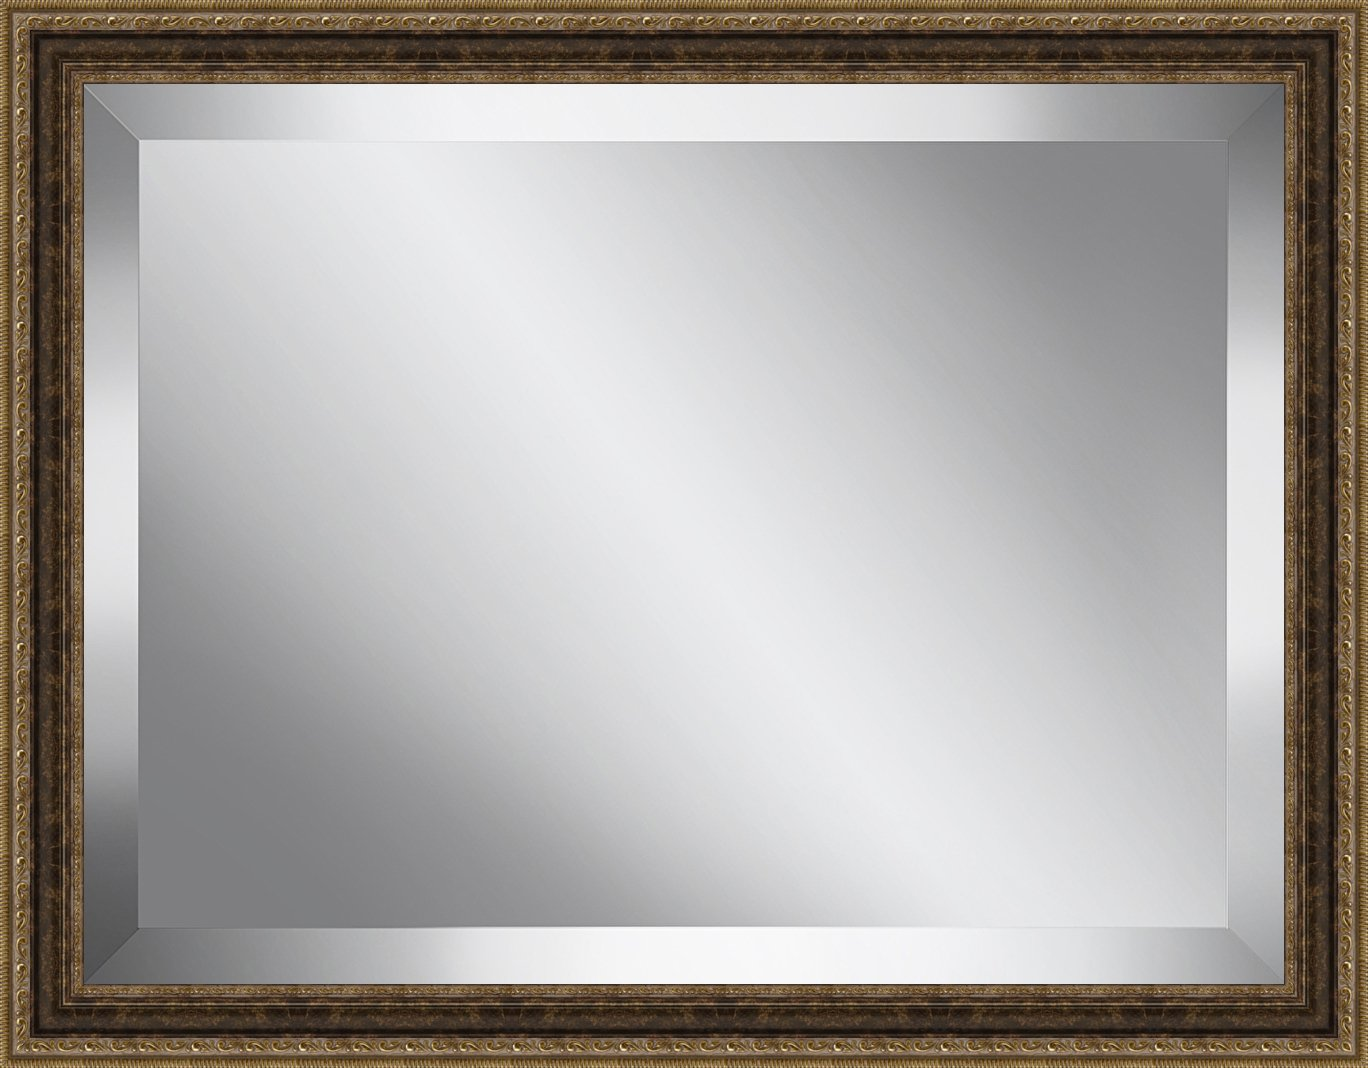 Ashton Art & Décor Traditional Antique Gold Framed Beveled Plate Glass Mirror, 24 by 28-Inch